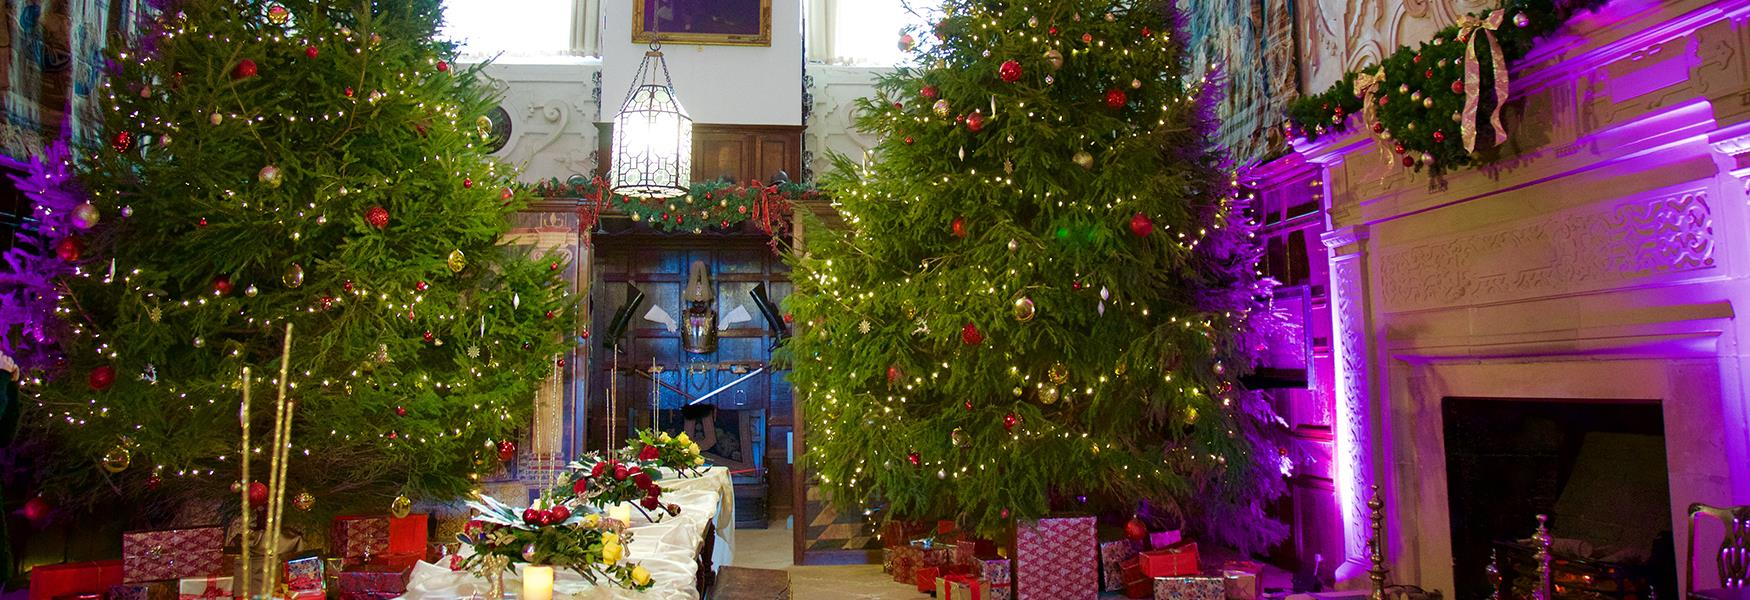 Christmas Events.Christmas In Derbyshire Christmas Events Peak District Guide